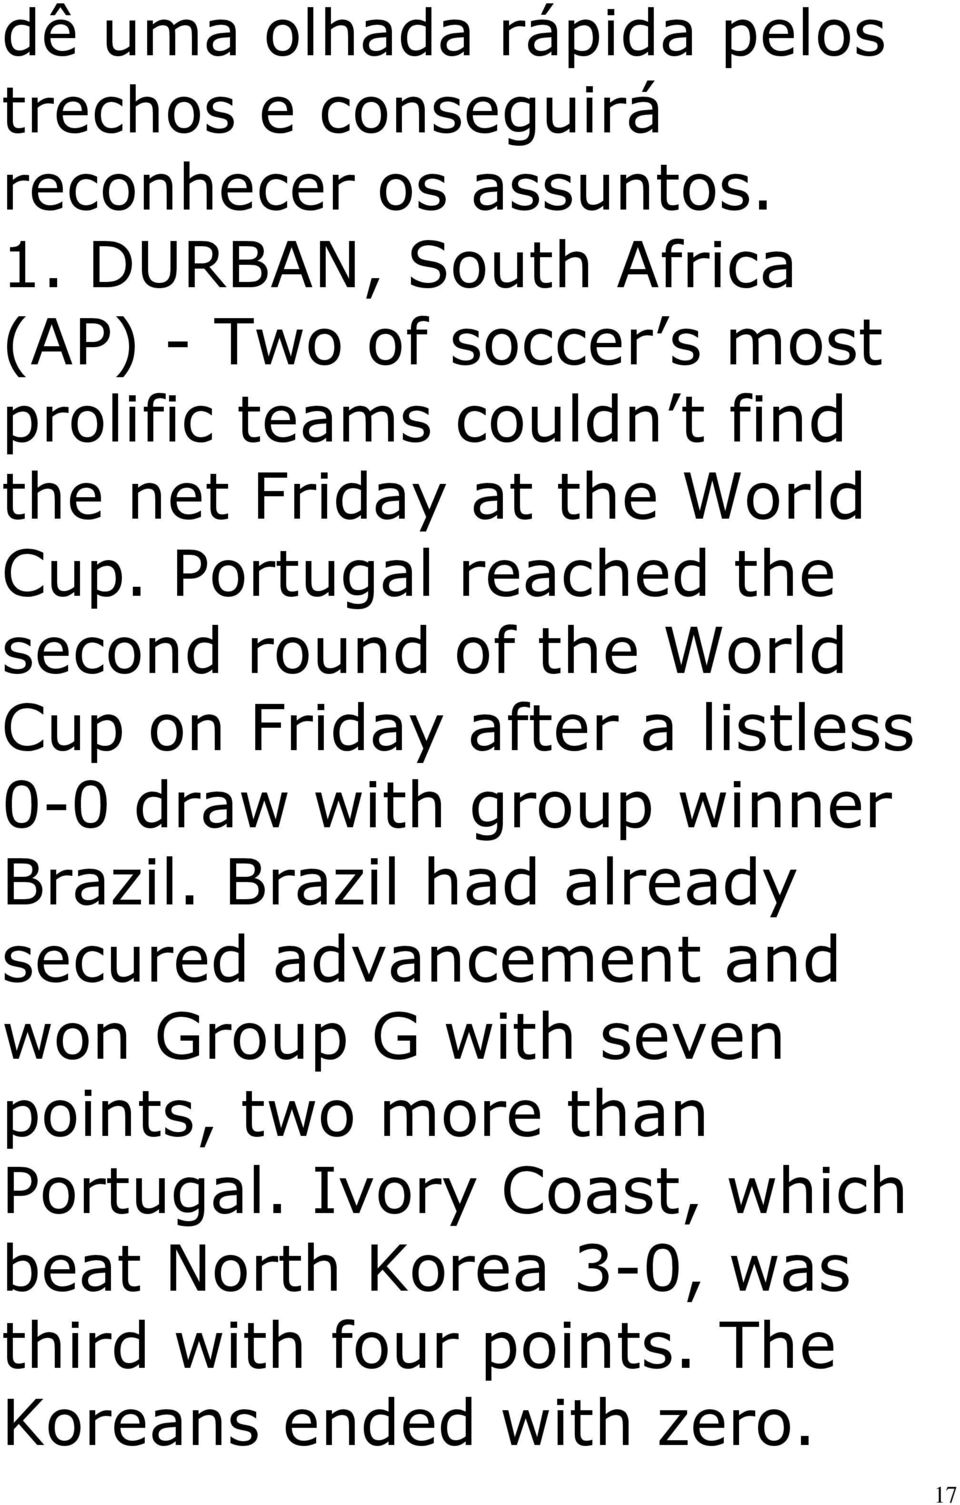 Portugal reached the second round of the World Cup on Friday after a listless 0-0 draw with group winner Brazil.